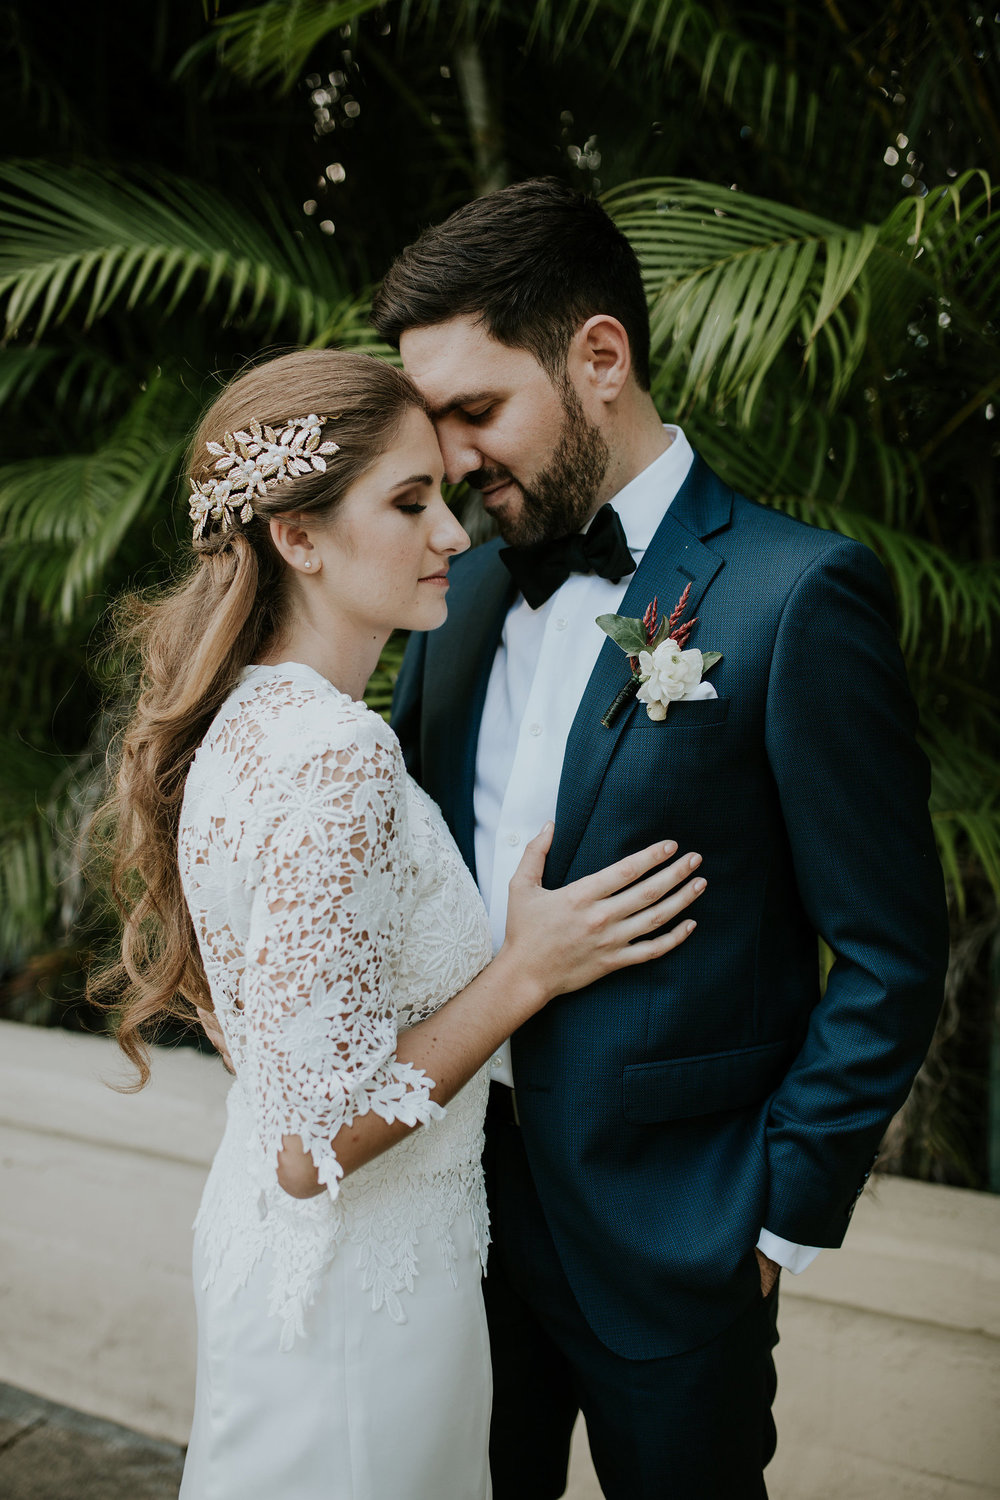 Photography by Lauren Louise Photography https://laurenlouisephotography.com/    Melissa with her Beautiful Lace Blouse for her big day!